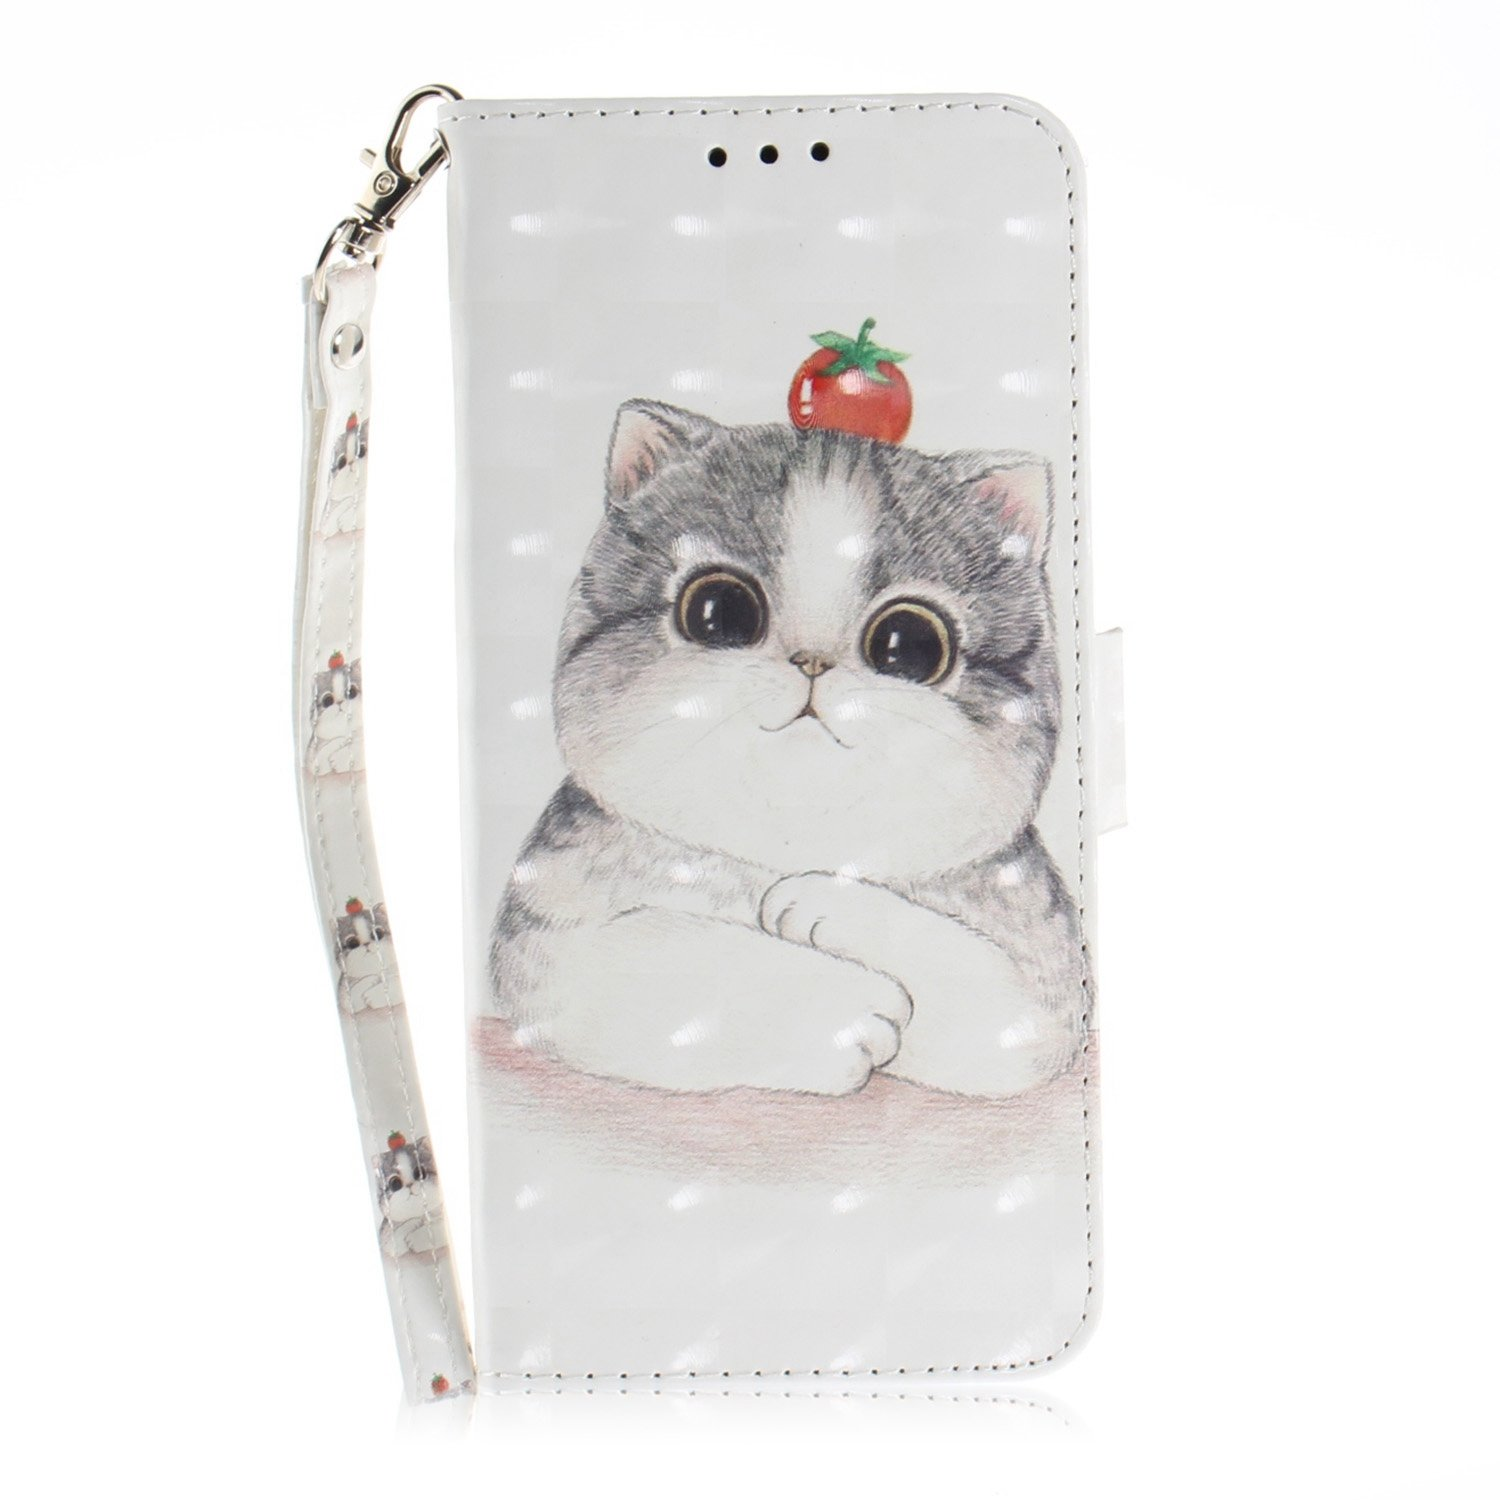 Custodia Xiaomi Redmi Note 5, Cover Xiaomi Redmi Note 5 Pro Flip PU, Okssud Xiaomi Redmi Note 5 Custodia Portafoglio, Moda Creative Design Wallet Leather Copertura Card Slot Stand Chiusura Magnetico Cover Pittura Colorata Acoiattolo Pattern Design Case Ant